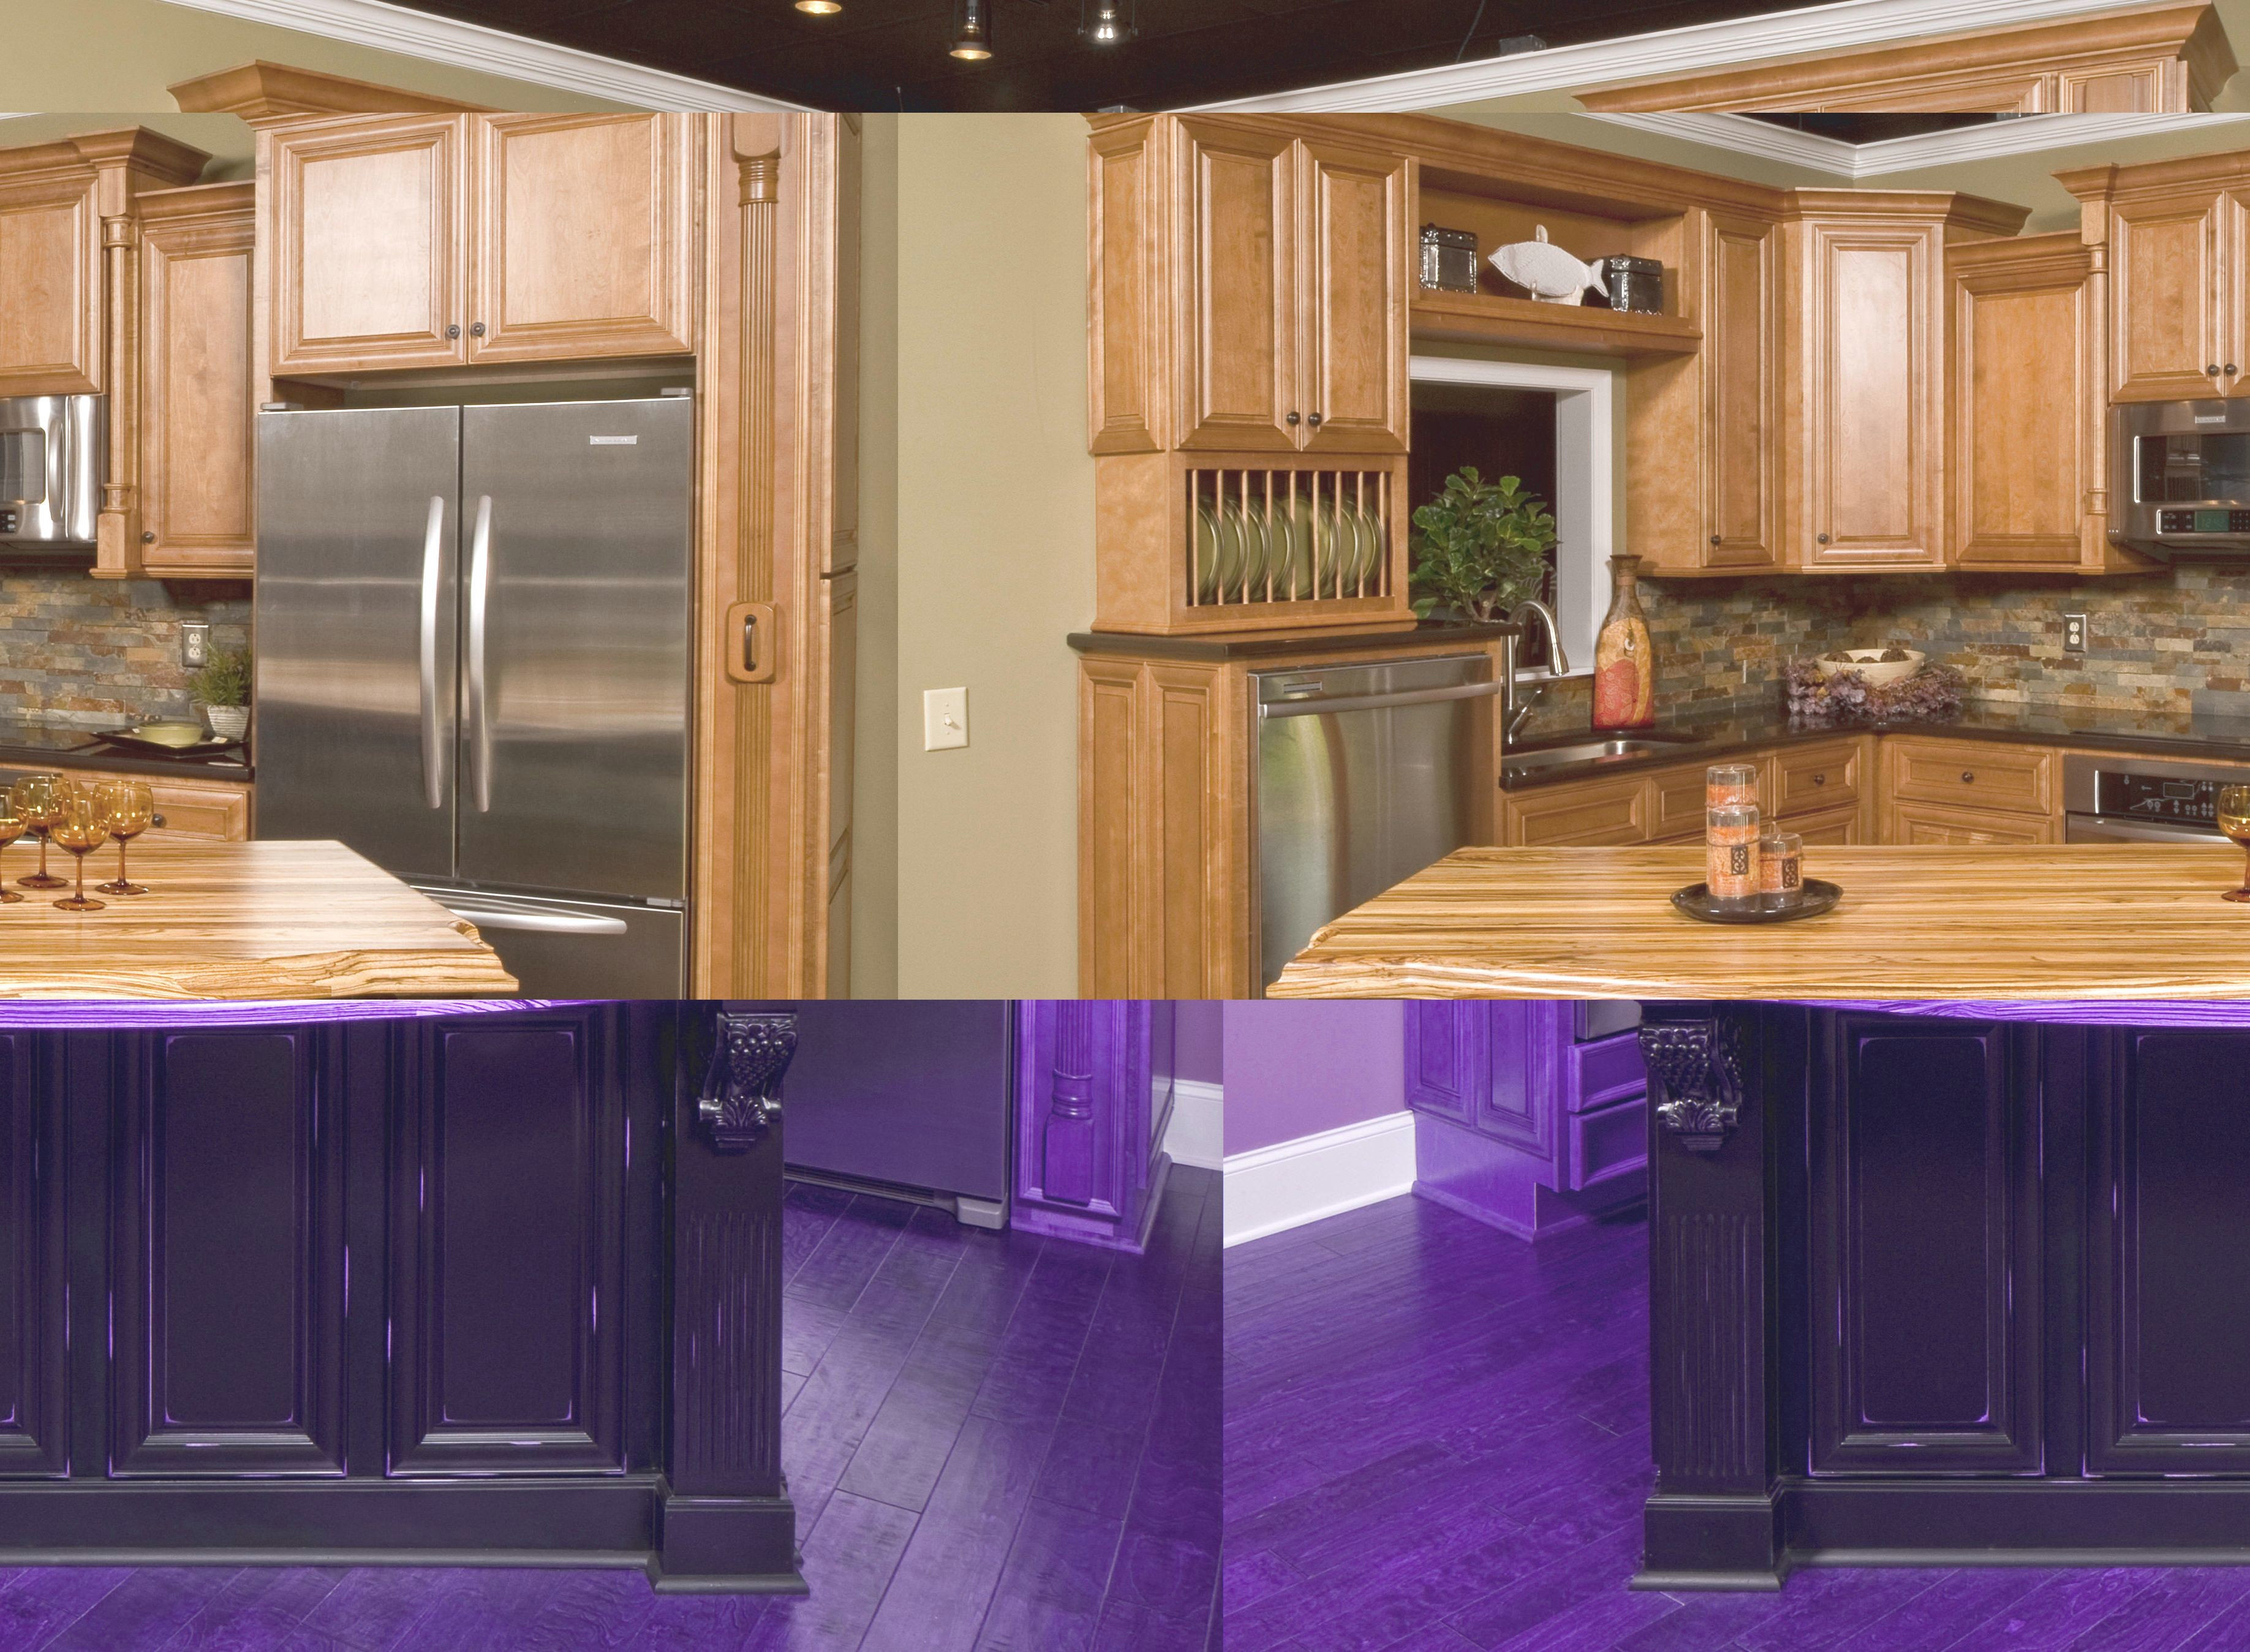 installing a hardwood floor youtube of adorable how to install kitchen cabinets youtube on how to paint intended for stunning how to install kitchen cabinets youtube within youtube how to hang wall cabinets how to